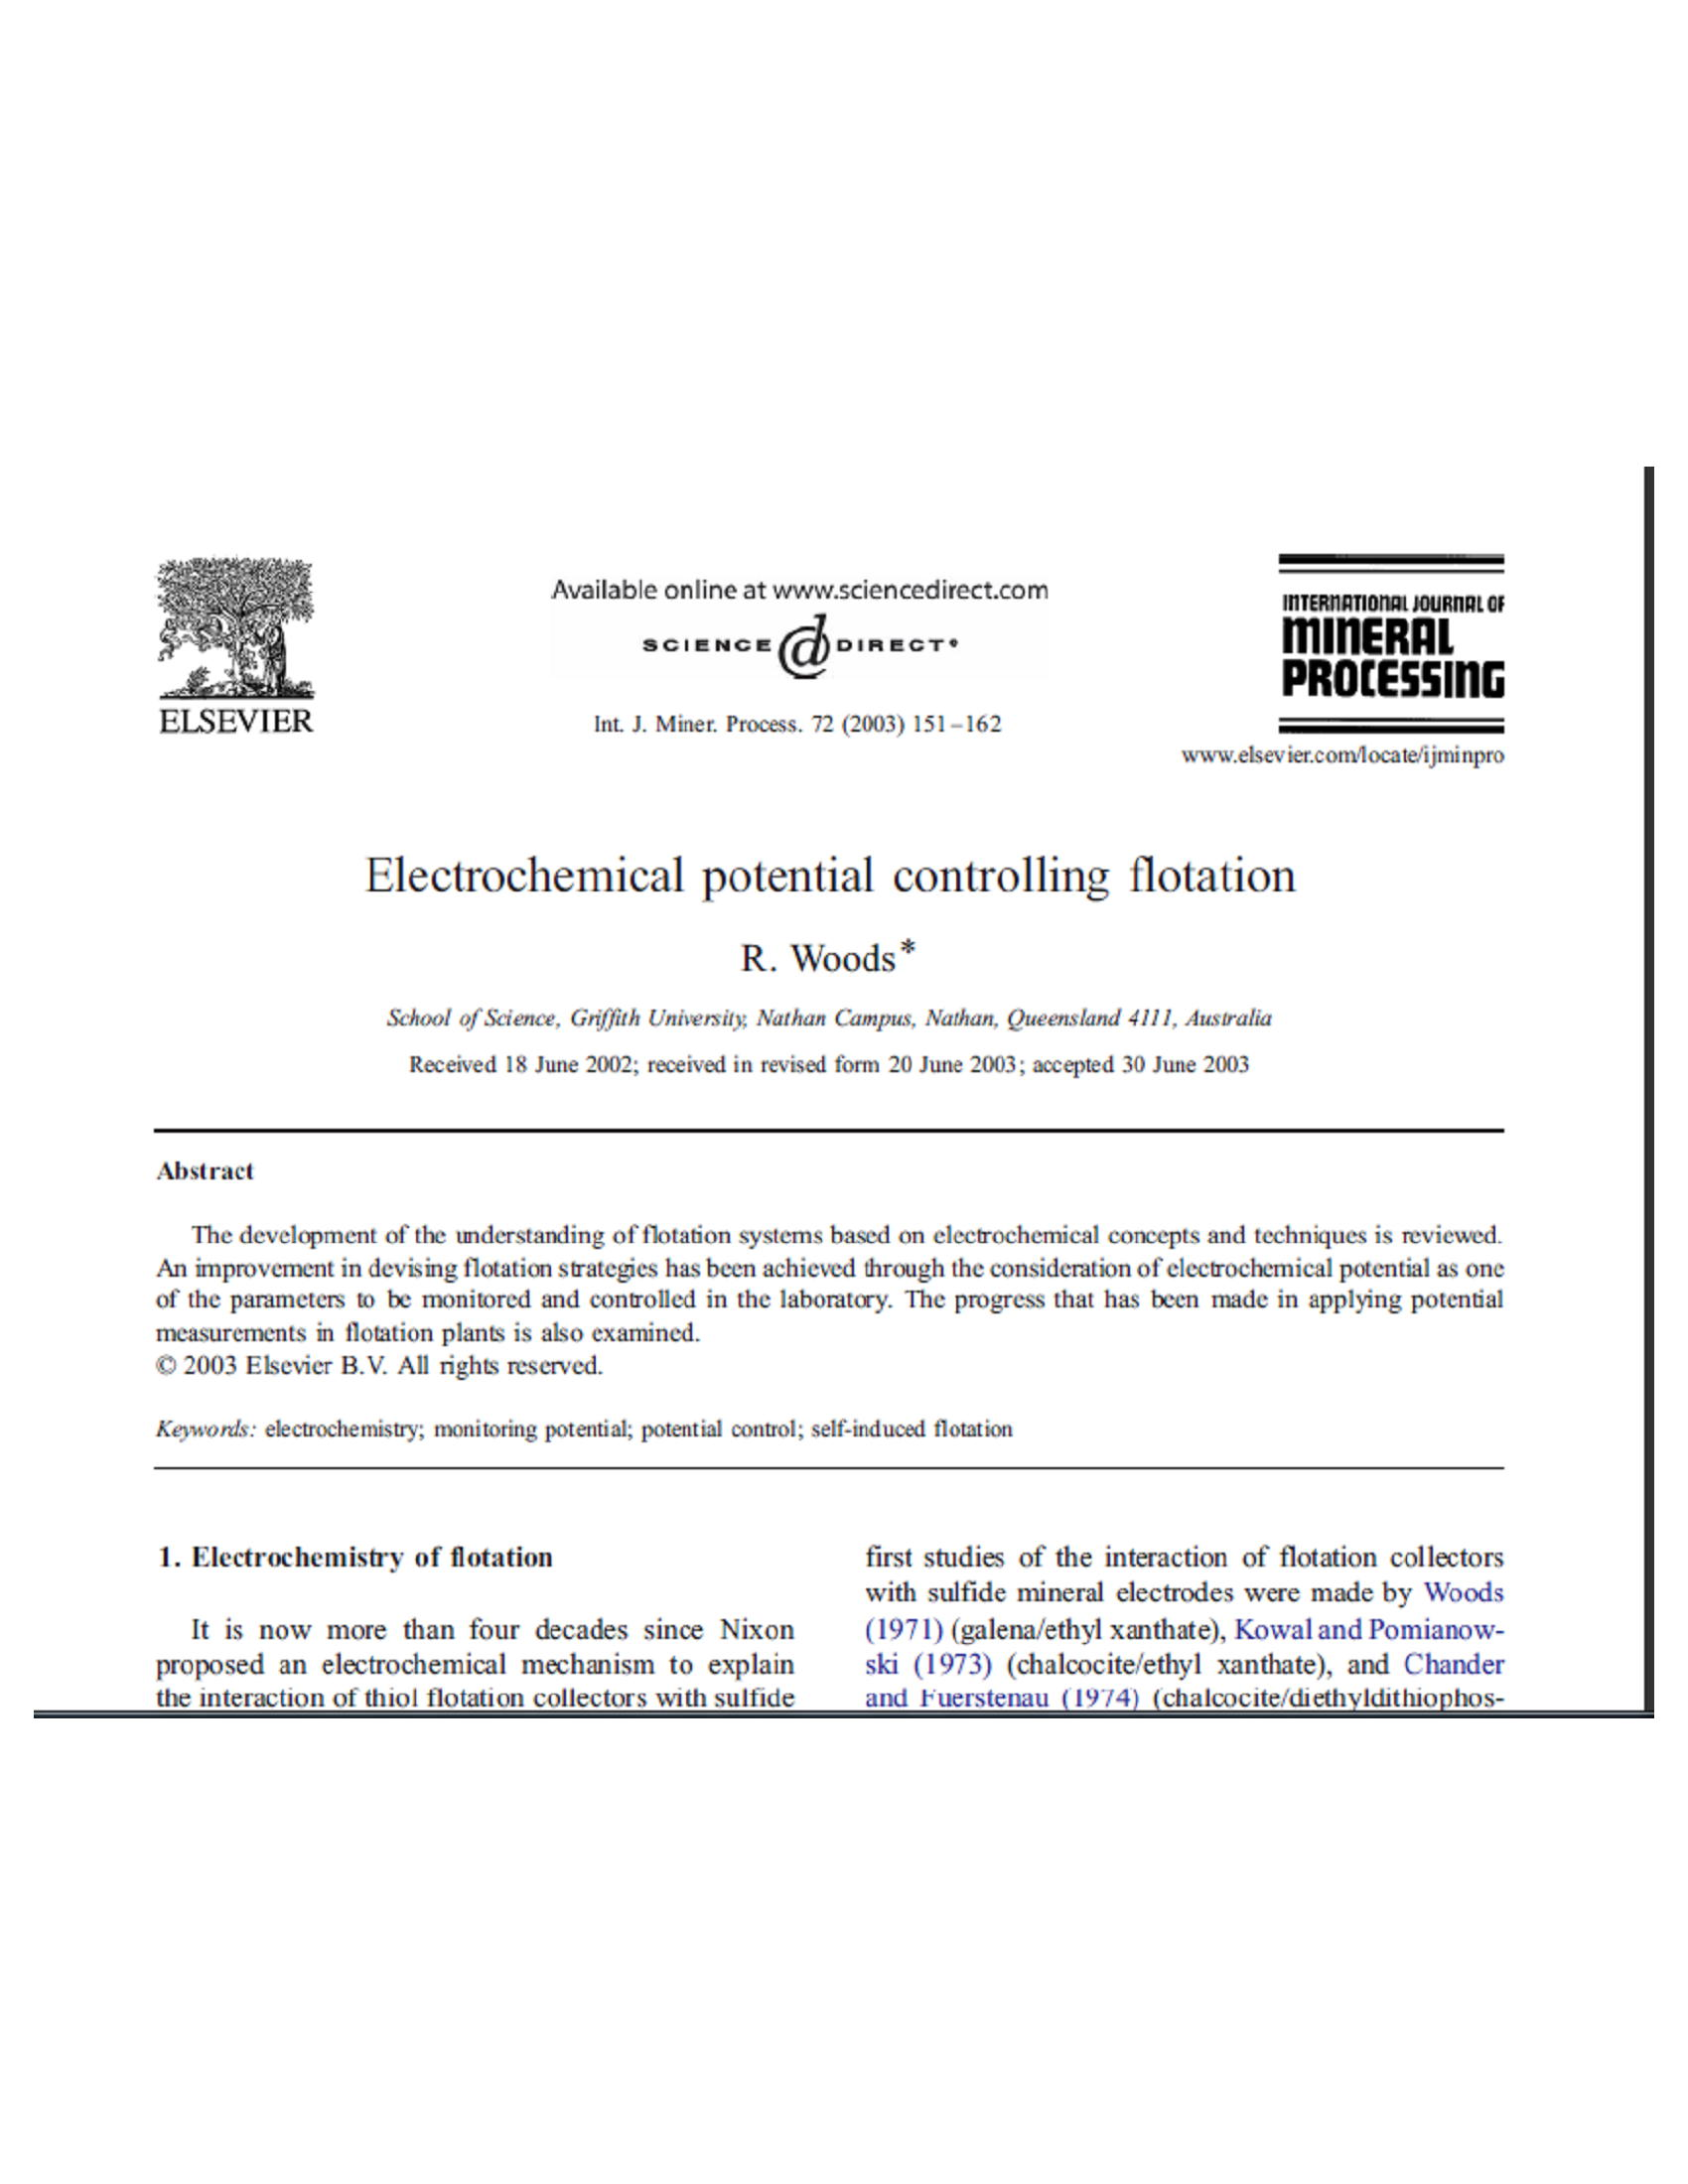 Electrochemical potential controlling flotation 12